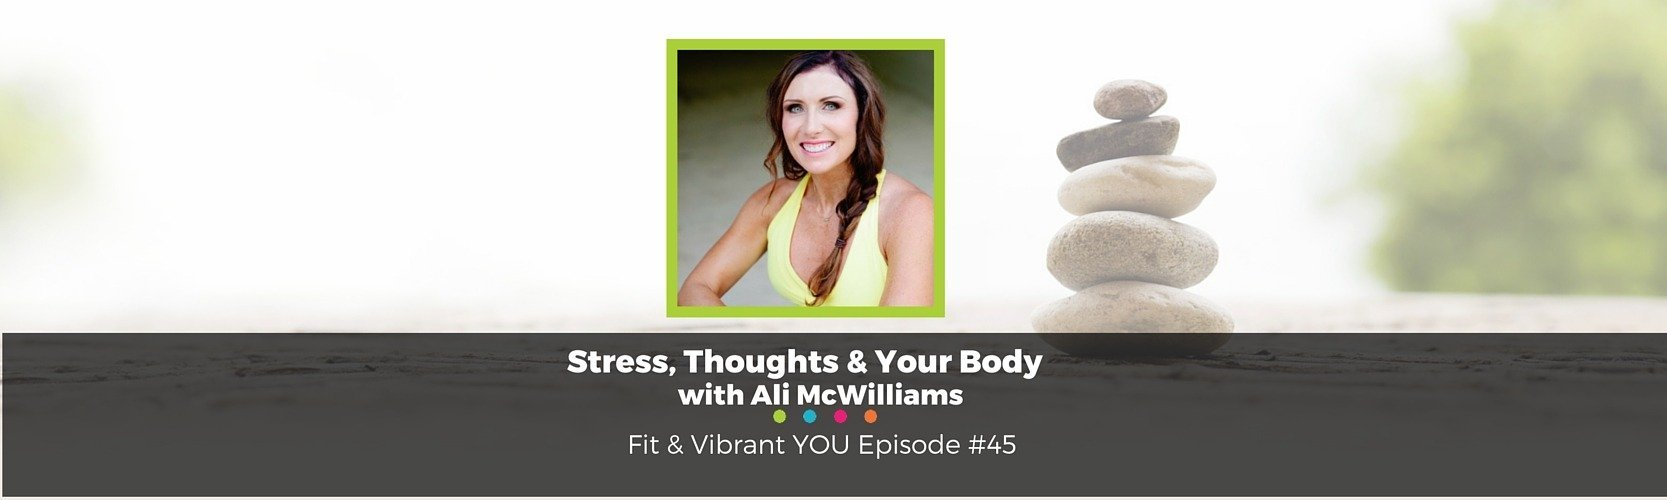 FVY 45: Stress, Thoughts & Your Body with Ali McWilliams